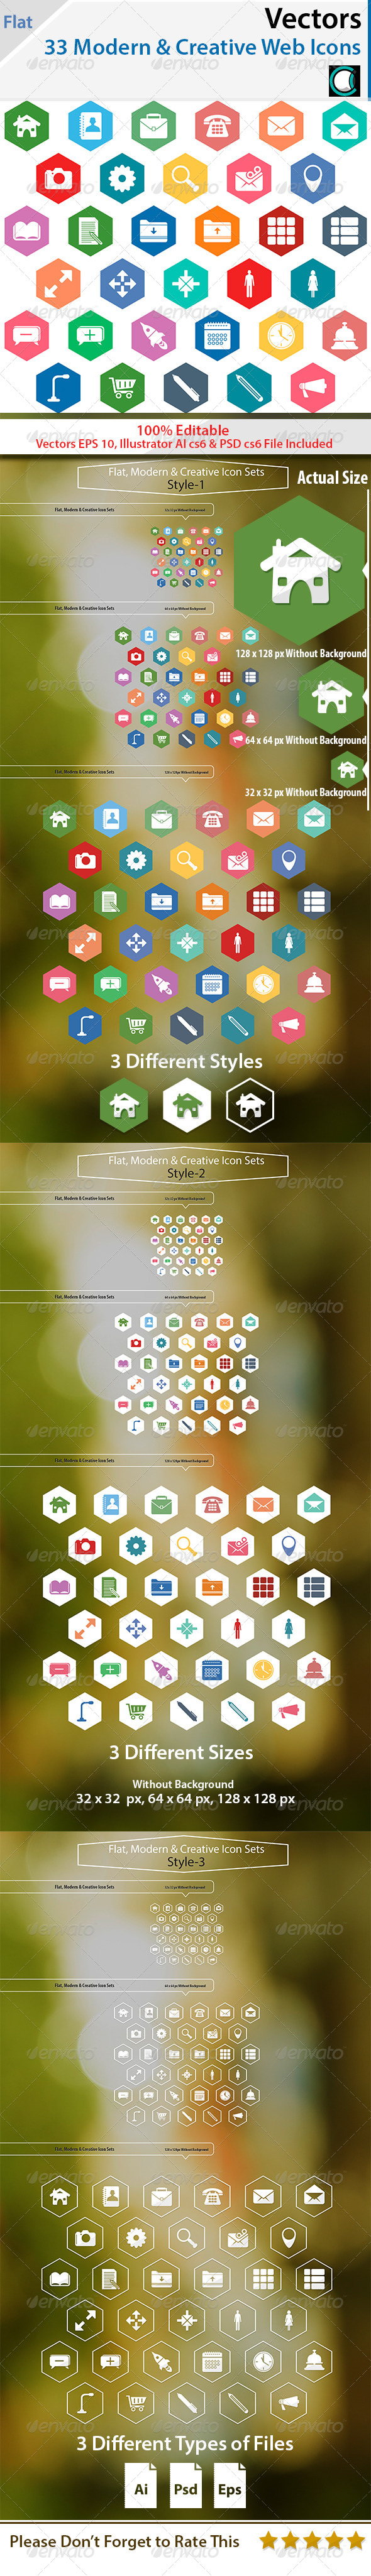 GraphicRiver Flat Modern and Creative Web Icons 5683107